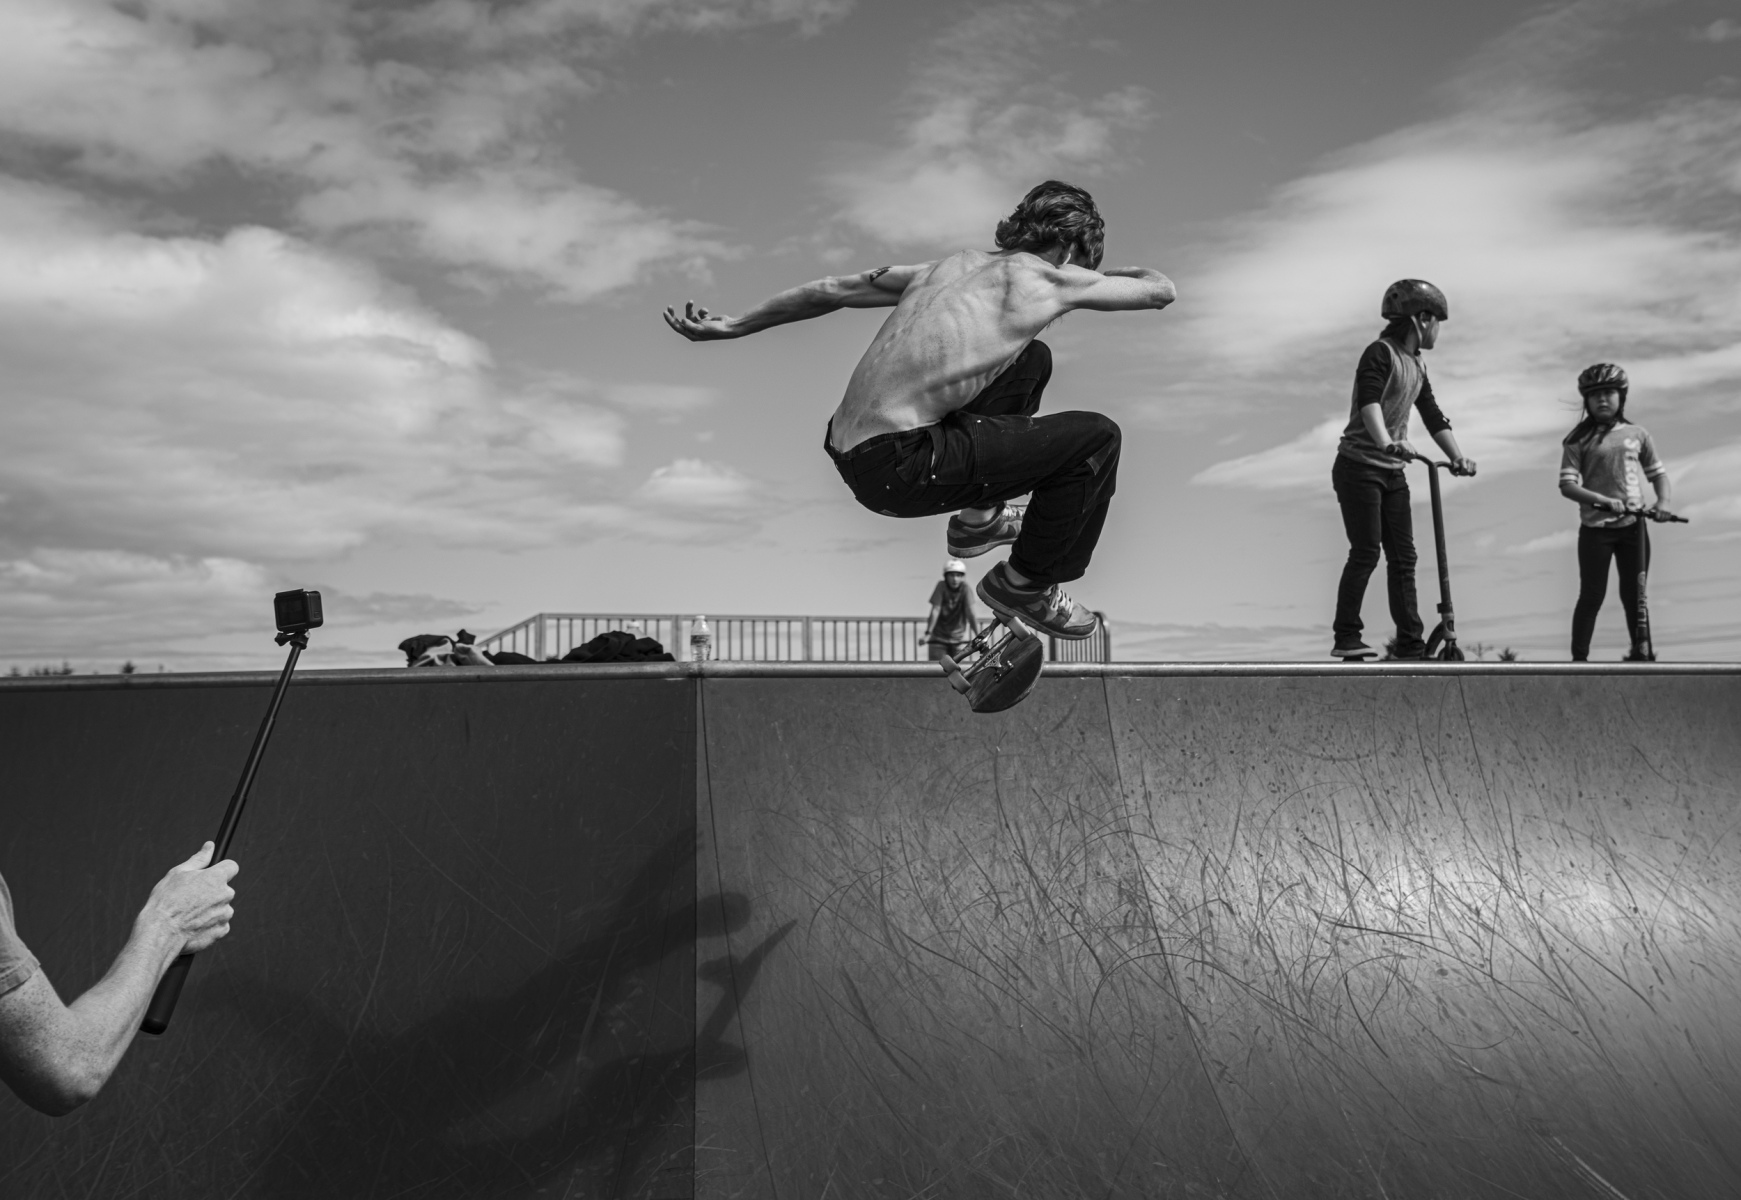 Brayden Stevens, 19, skates as his friend records him on a Gopro at Baranof Park, Thursday, August 6, 2020 in Kodiak, Alaska. Stevens is a well known skater in the community that can be found at the park nearly everyday of the summer when he's not working or surfing